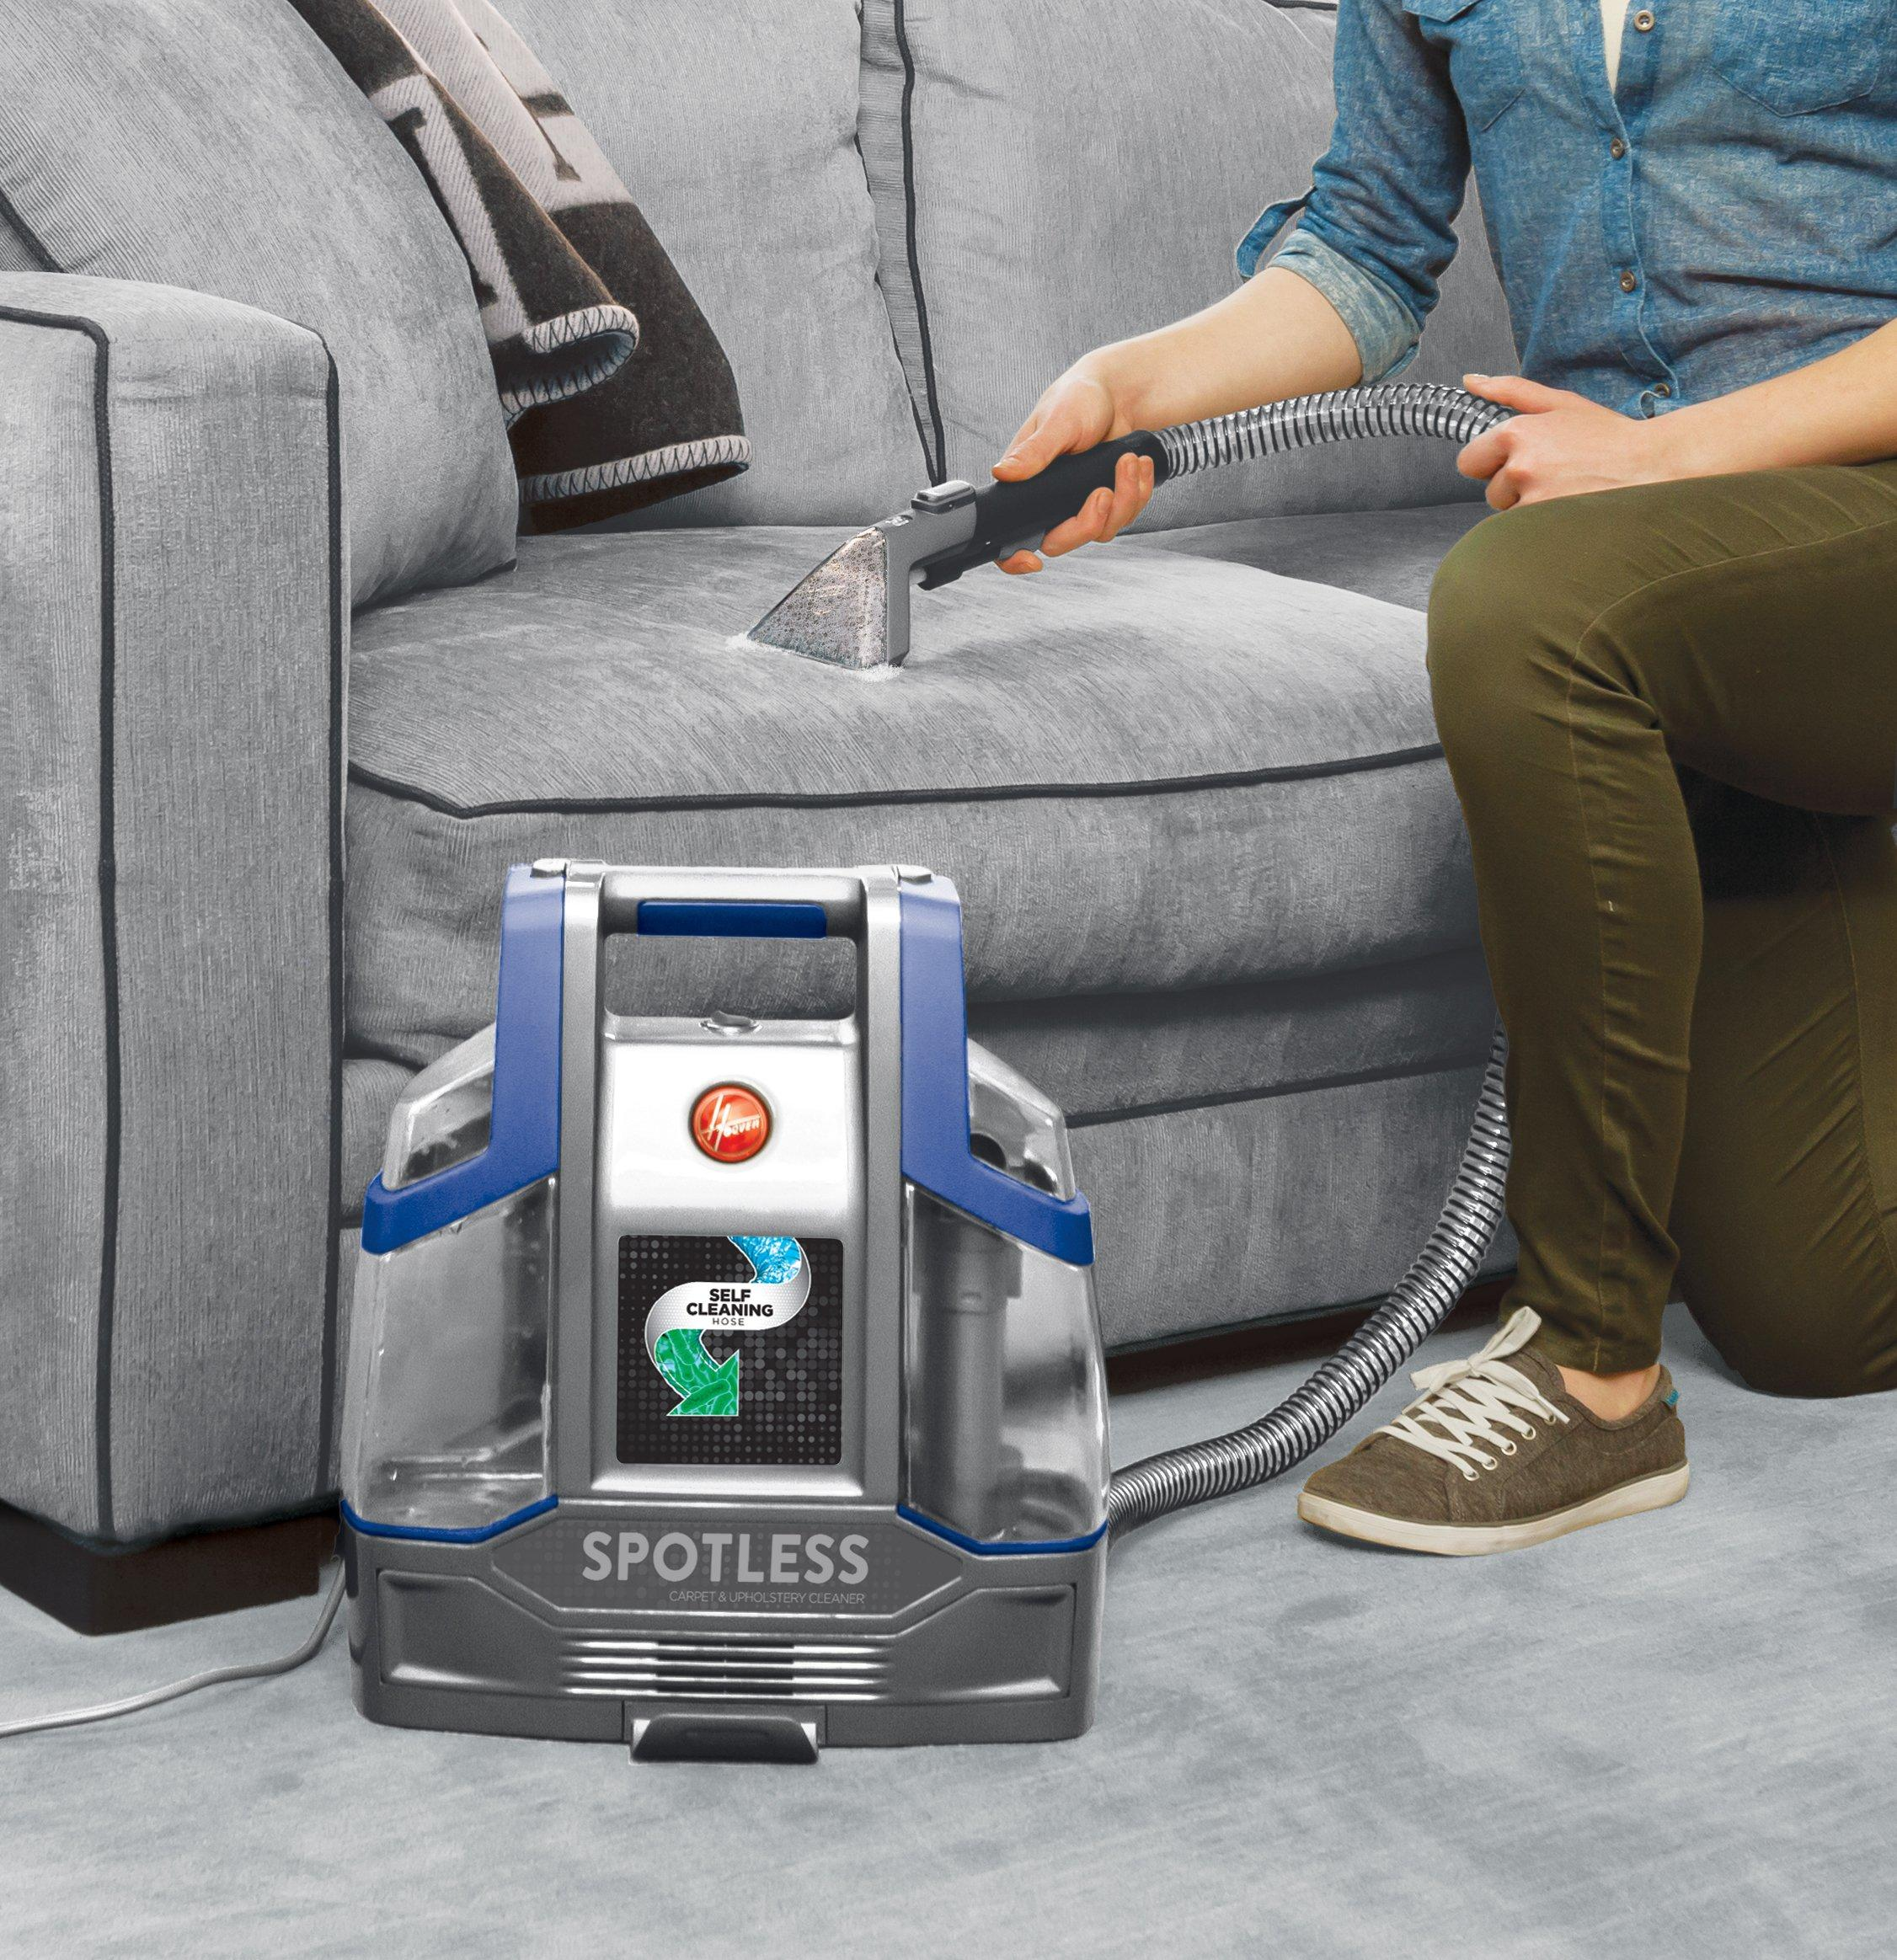 Spotless Deluxe Portable Carpet & Upholstery Cleaner3